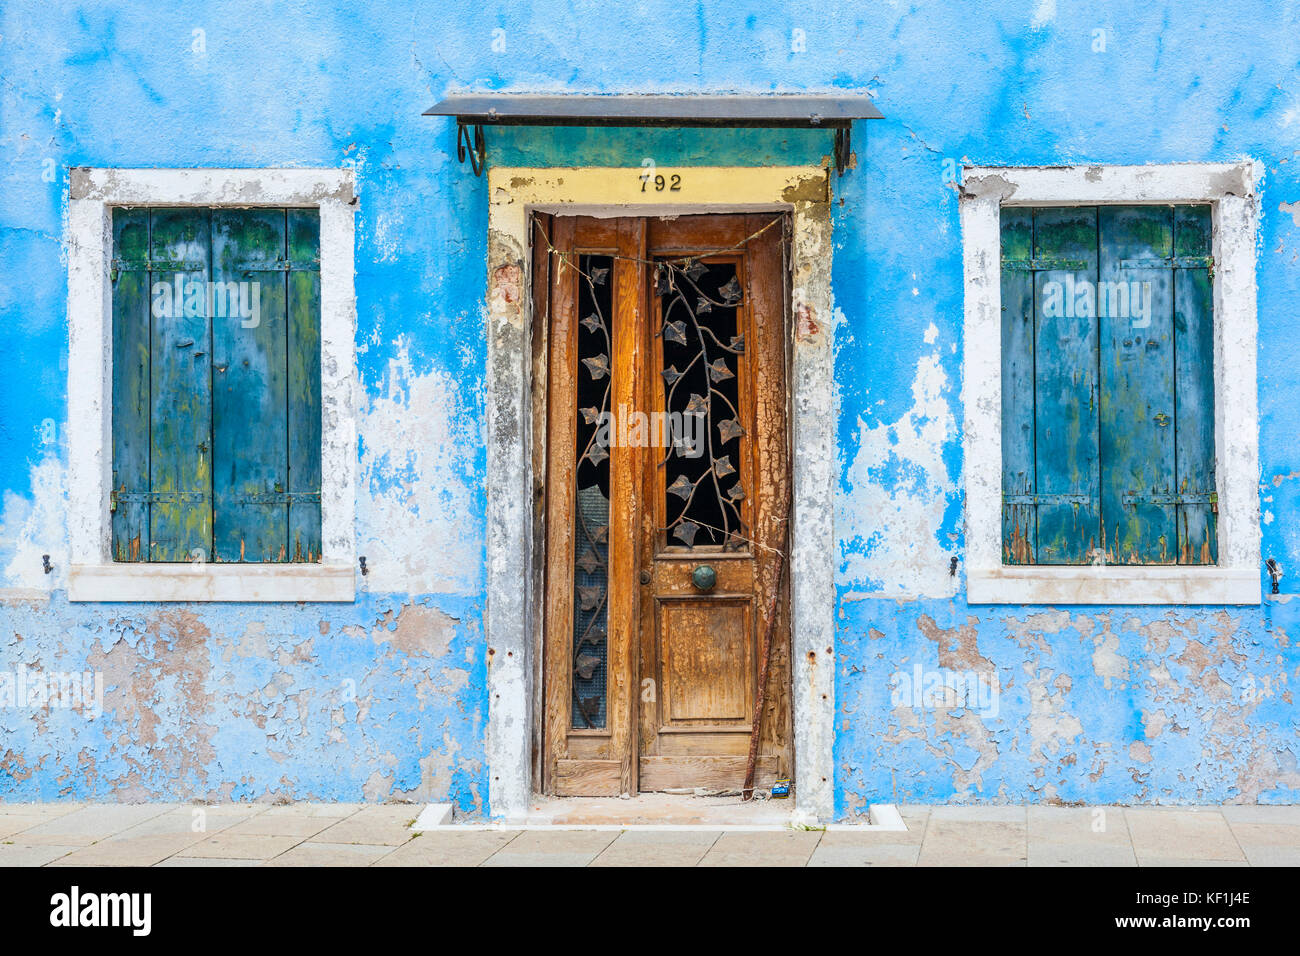 VENICE ITALY VENICE Fishermans house Shabby blue painted house with wooden door and blue shutters Island of Burano Venice Lagoon Venice Italy  Europe Stock Photo